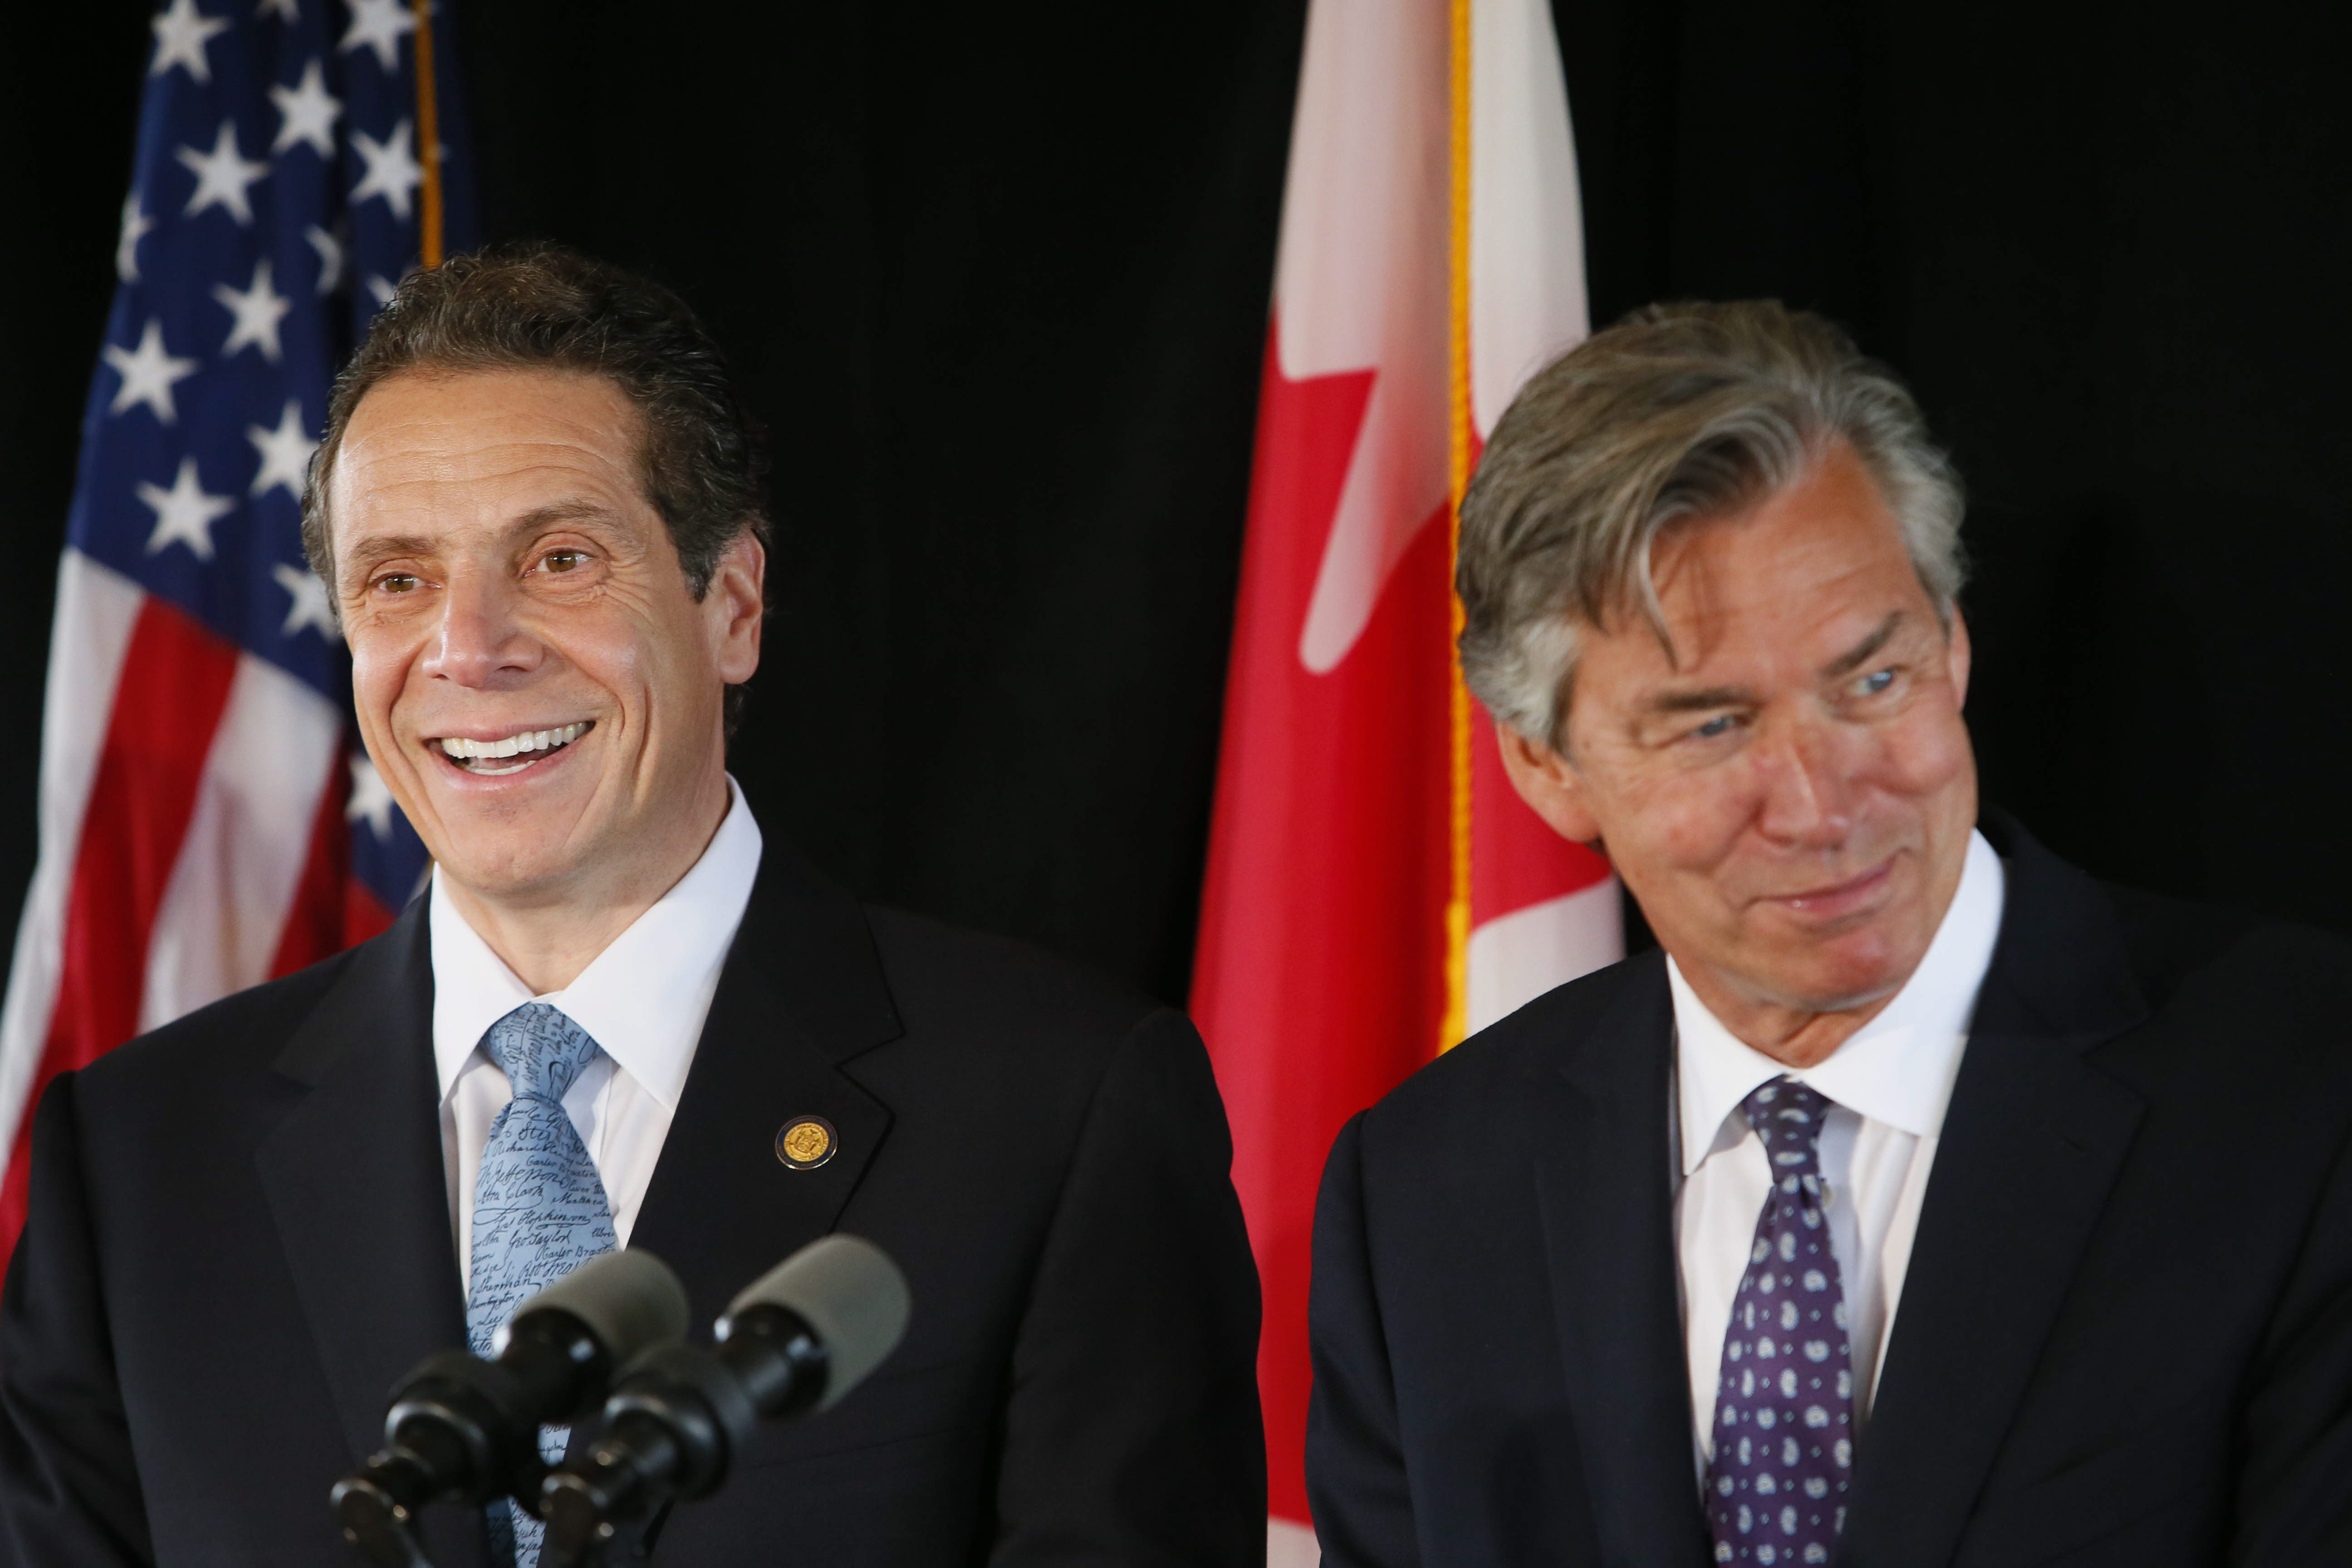 New York Gov. Andrew Cuomo, left, and Canadian Ambassador to the U.S. Gary Doer, right, have a laugh during a press conference to announce an agreement between New York and Canada on the Peace Bridge at the Frank Lloyd Wright Boathouse at the West Side Rowing Club, Wednesday, June 26, 2013.  (Derek Gee/Buffalo News)